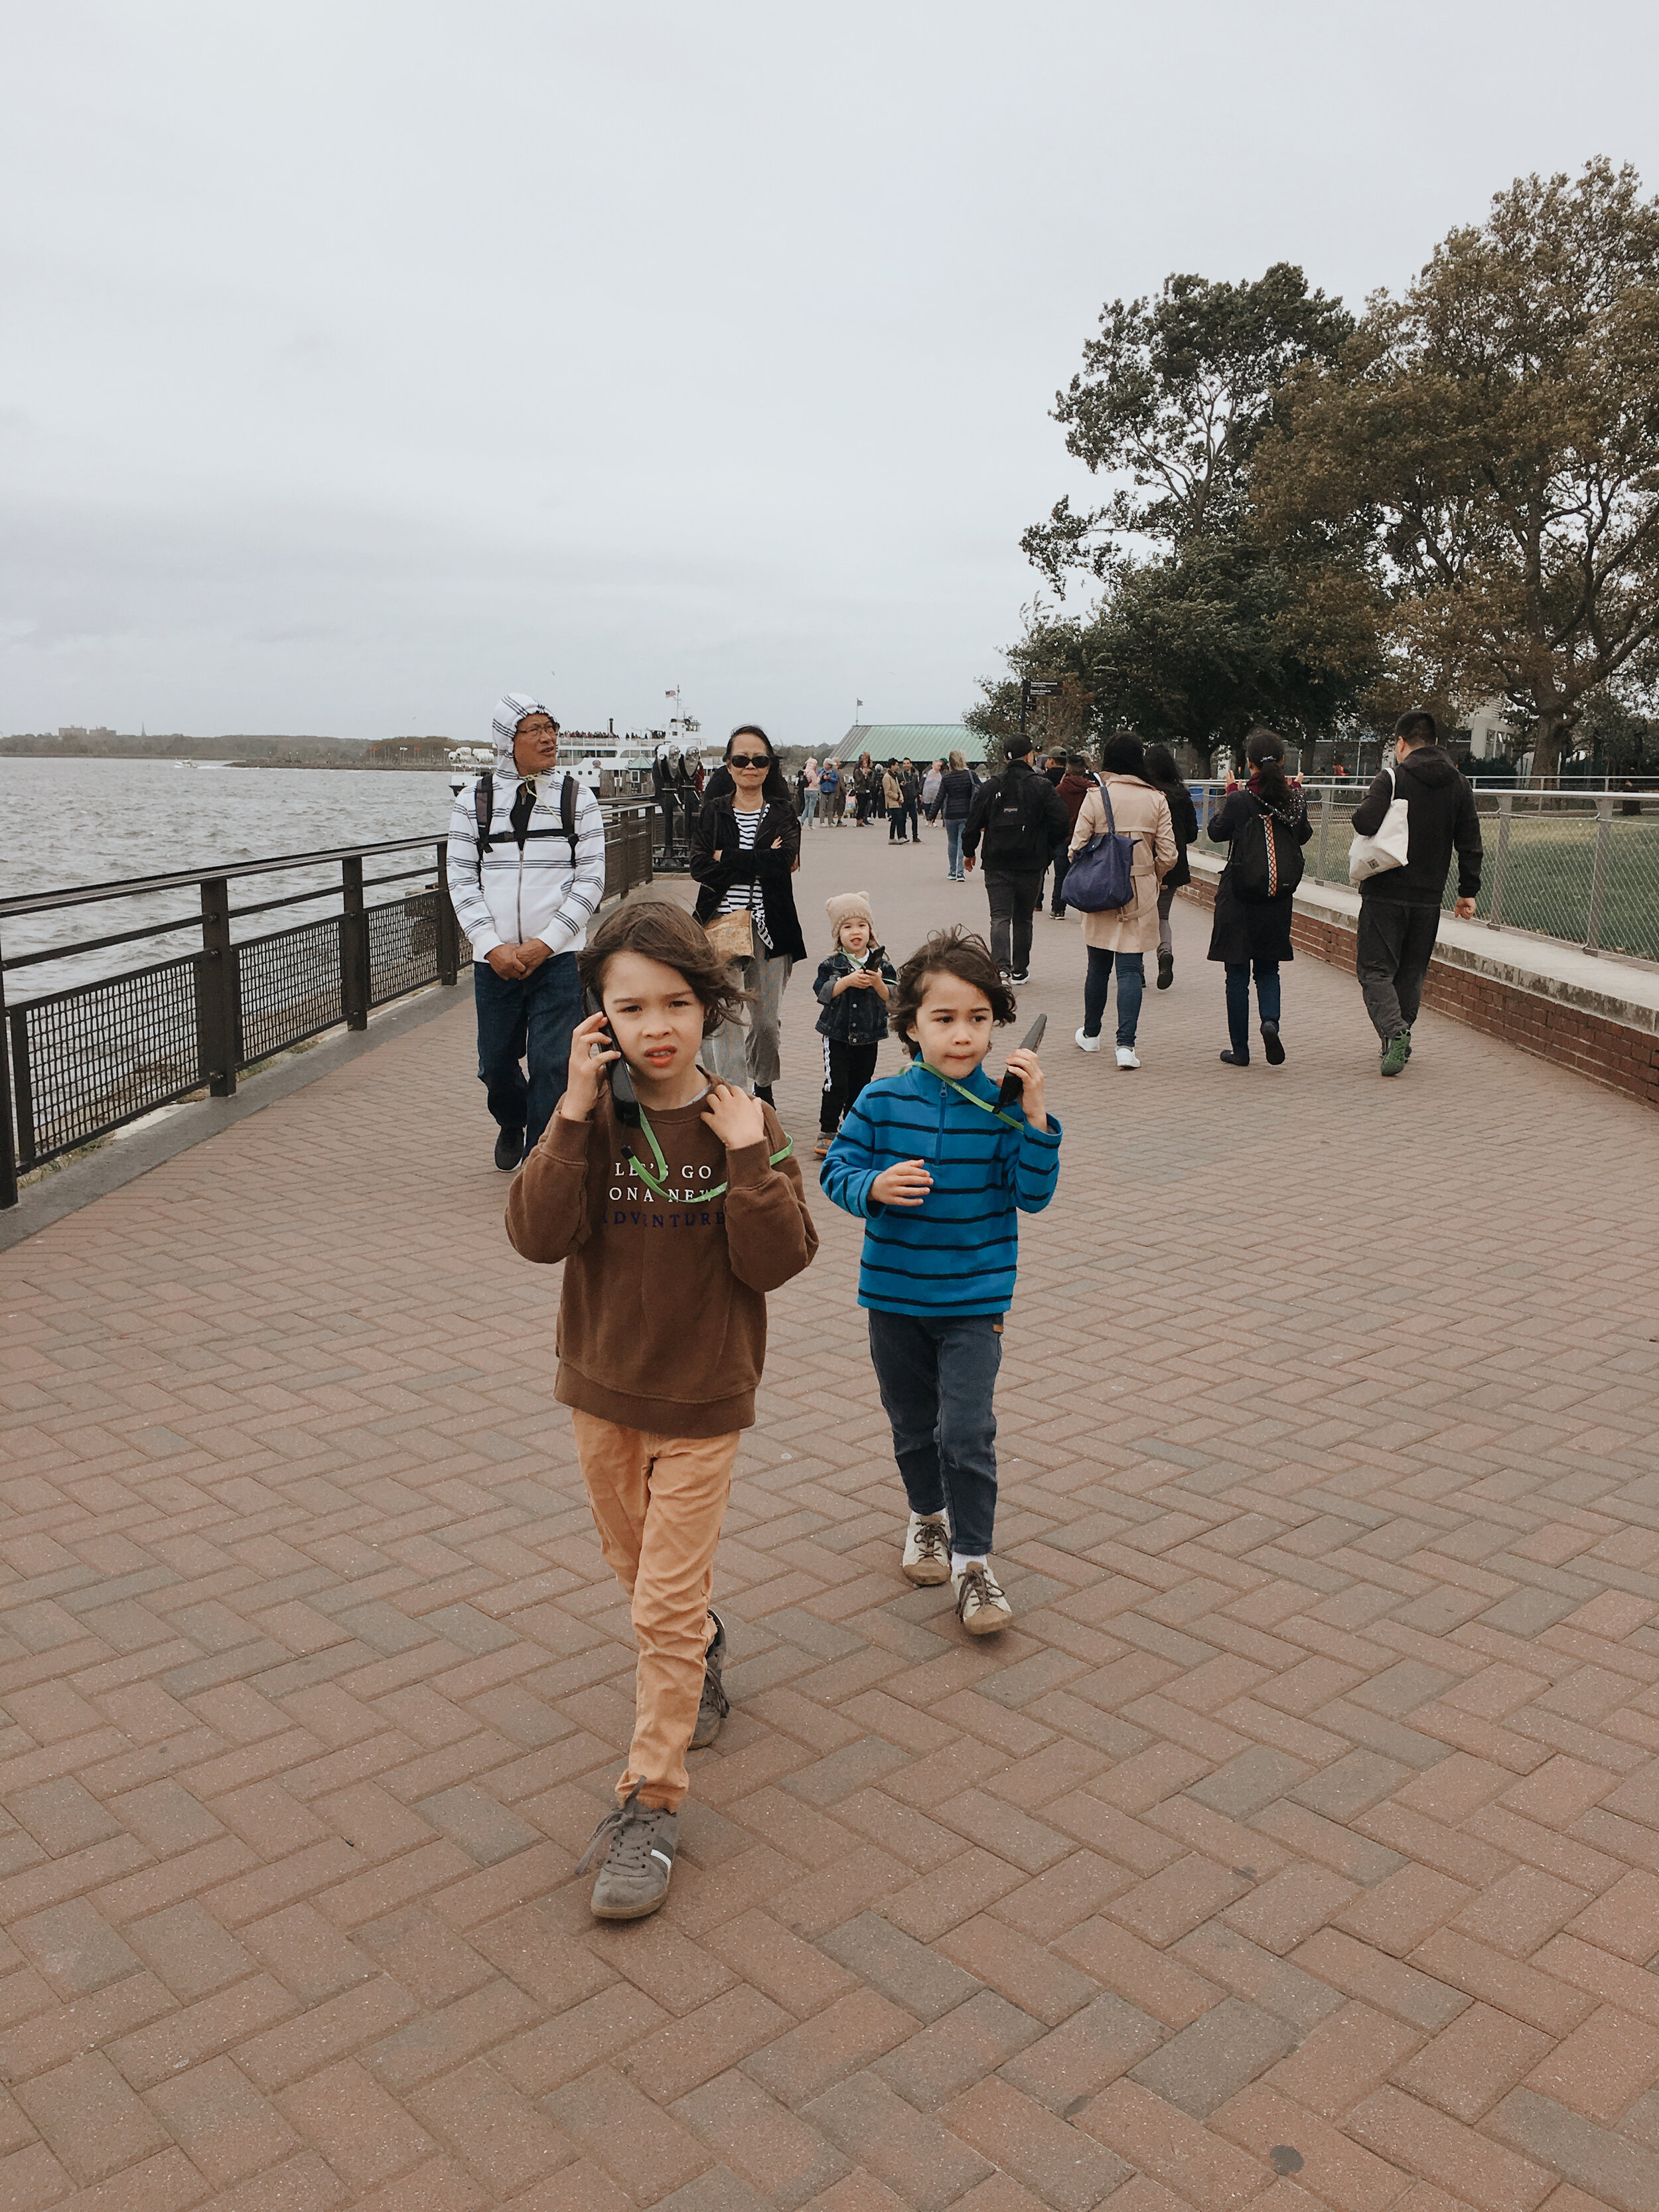 Audio guide tour of Liberty Island grounds.